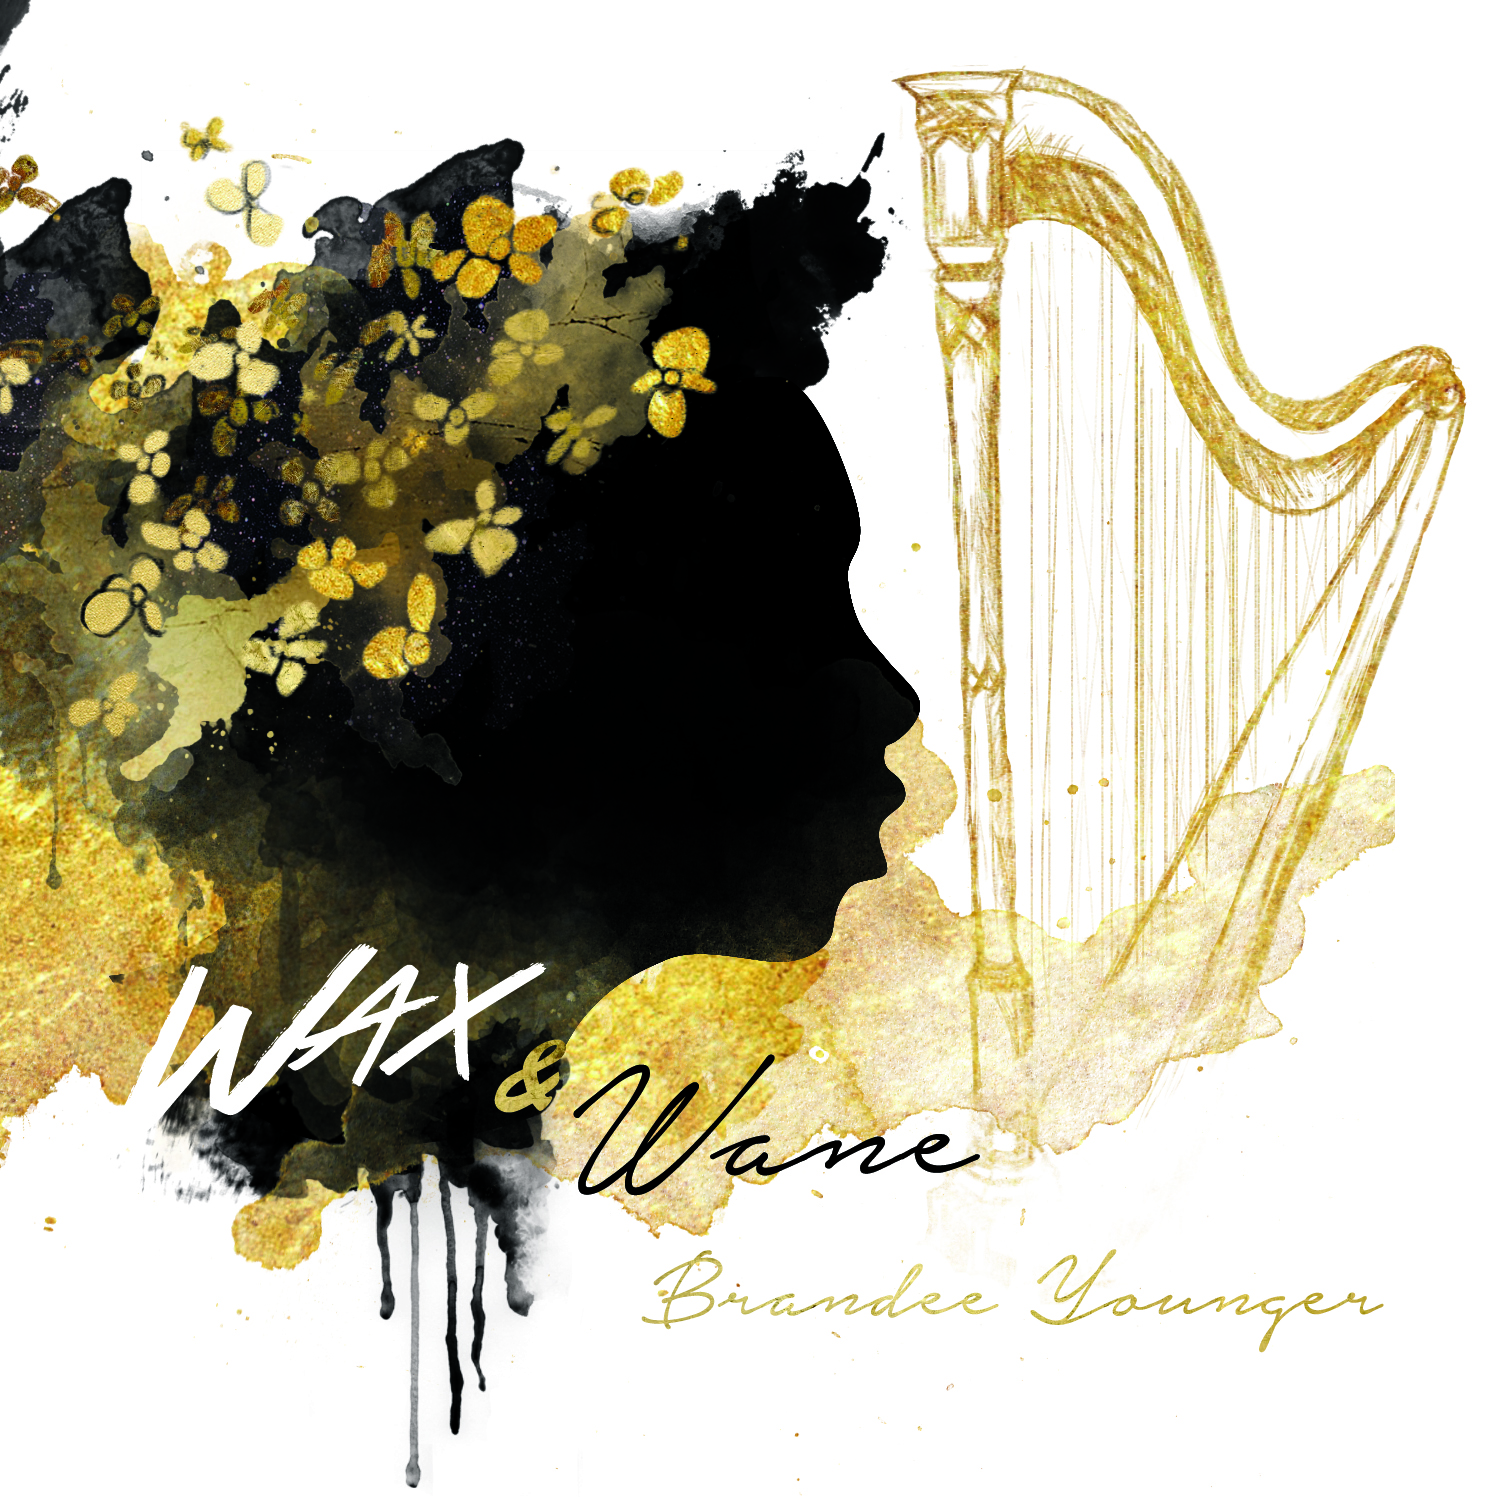 'Wax & Wane' Reviewed on Black Grooves, Archives of African American Music & Culture